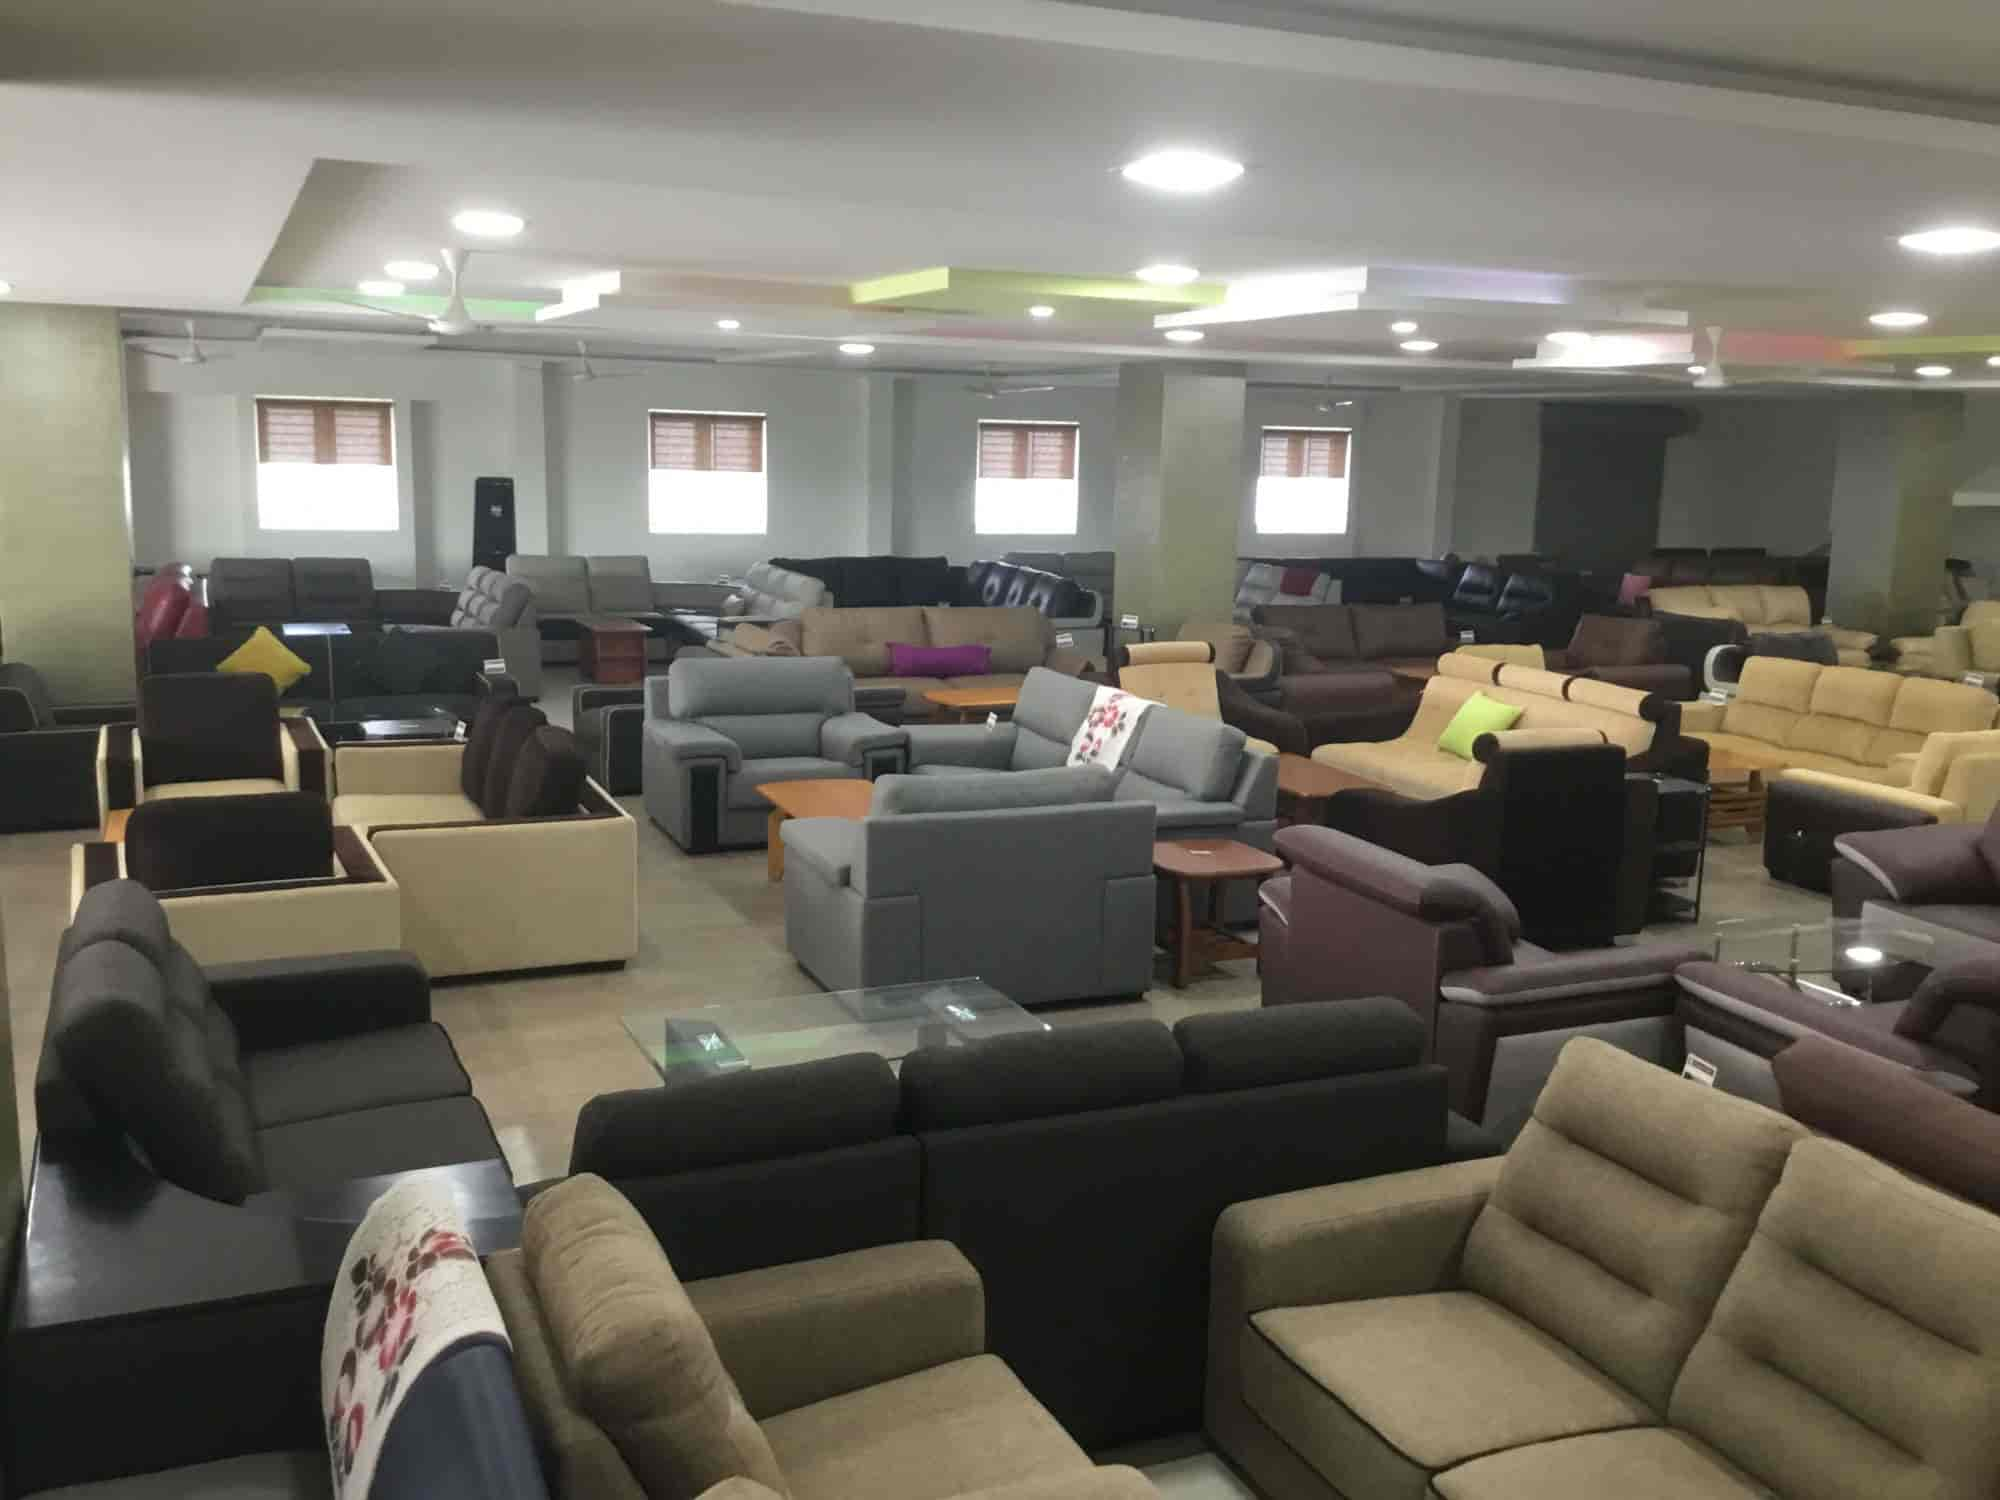 K Furniture Mall Photos Karur Pictures Images Gallery Justdial